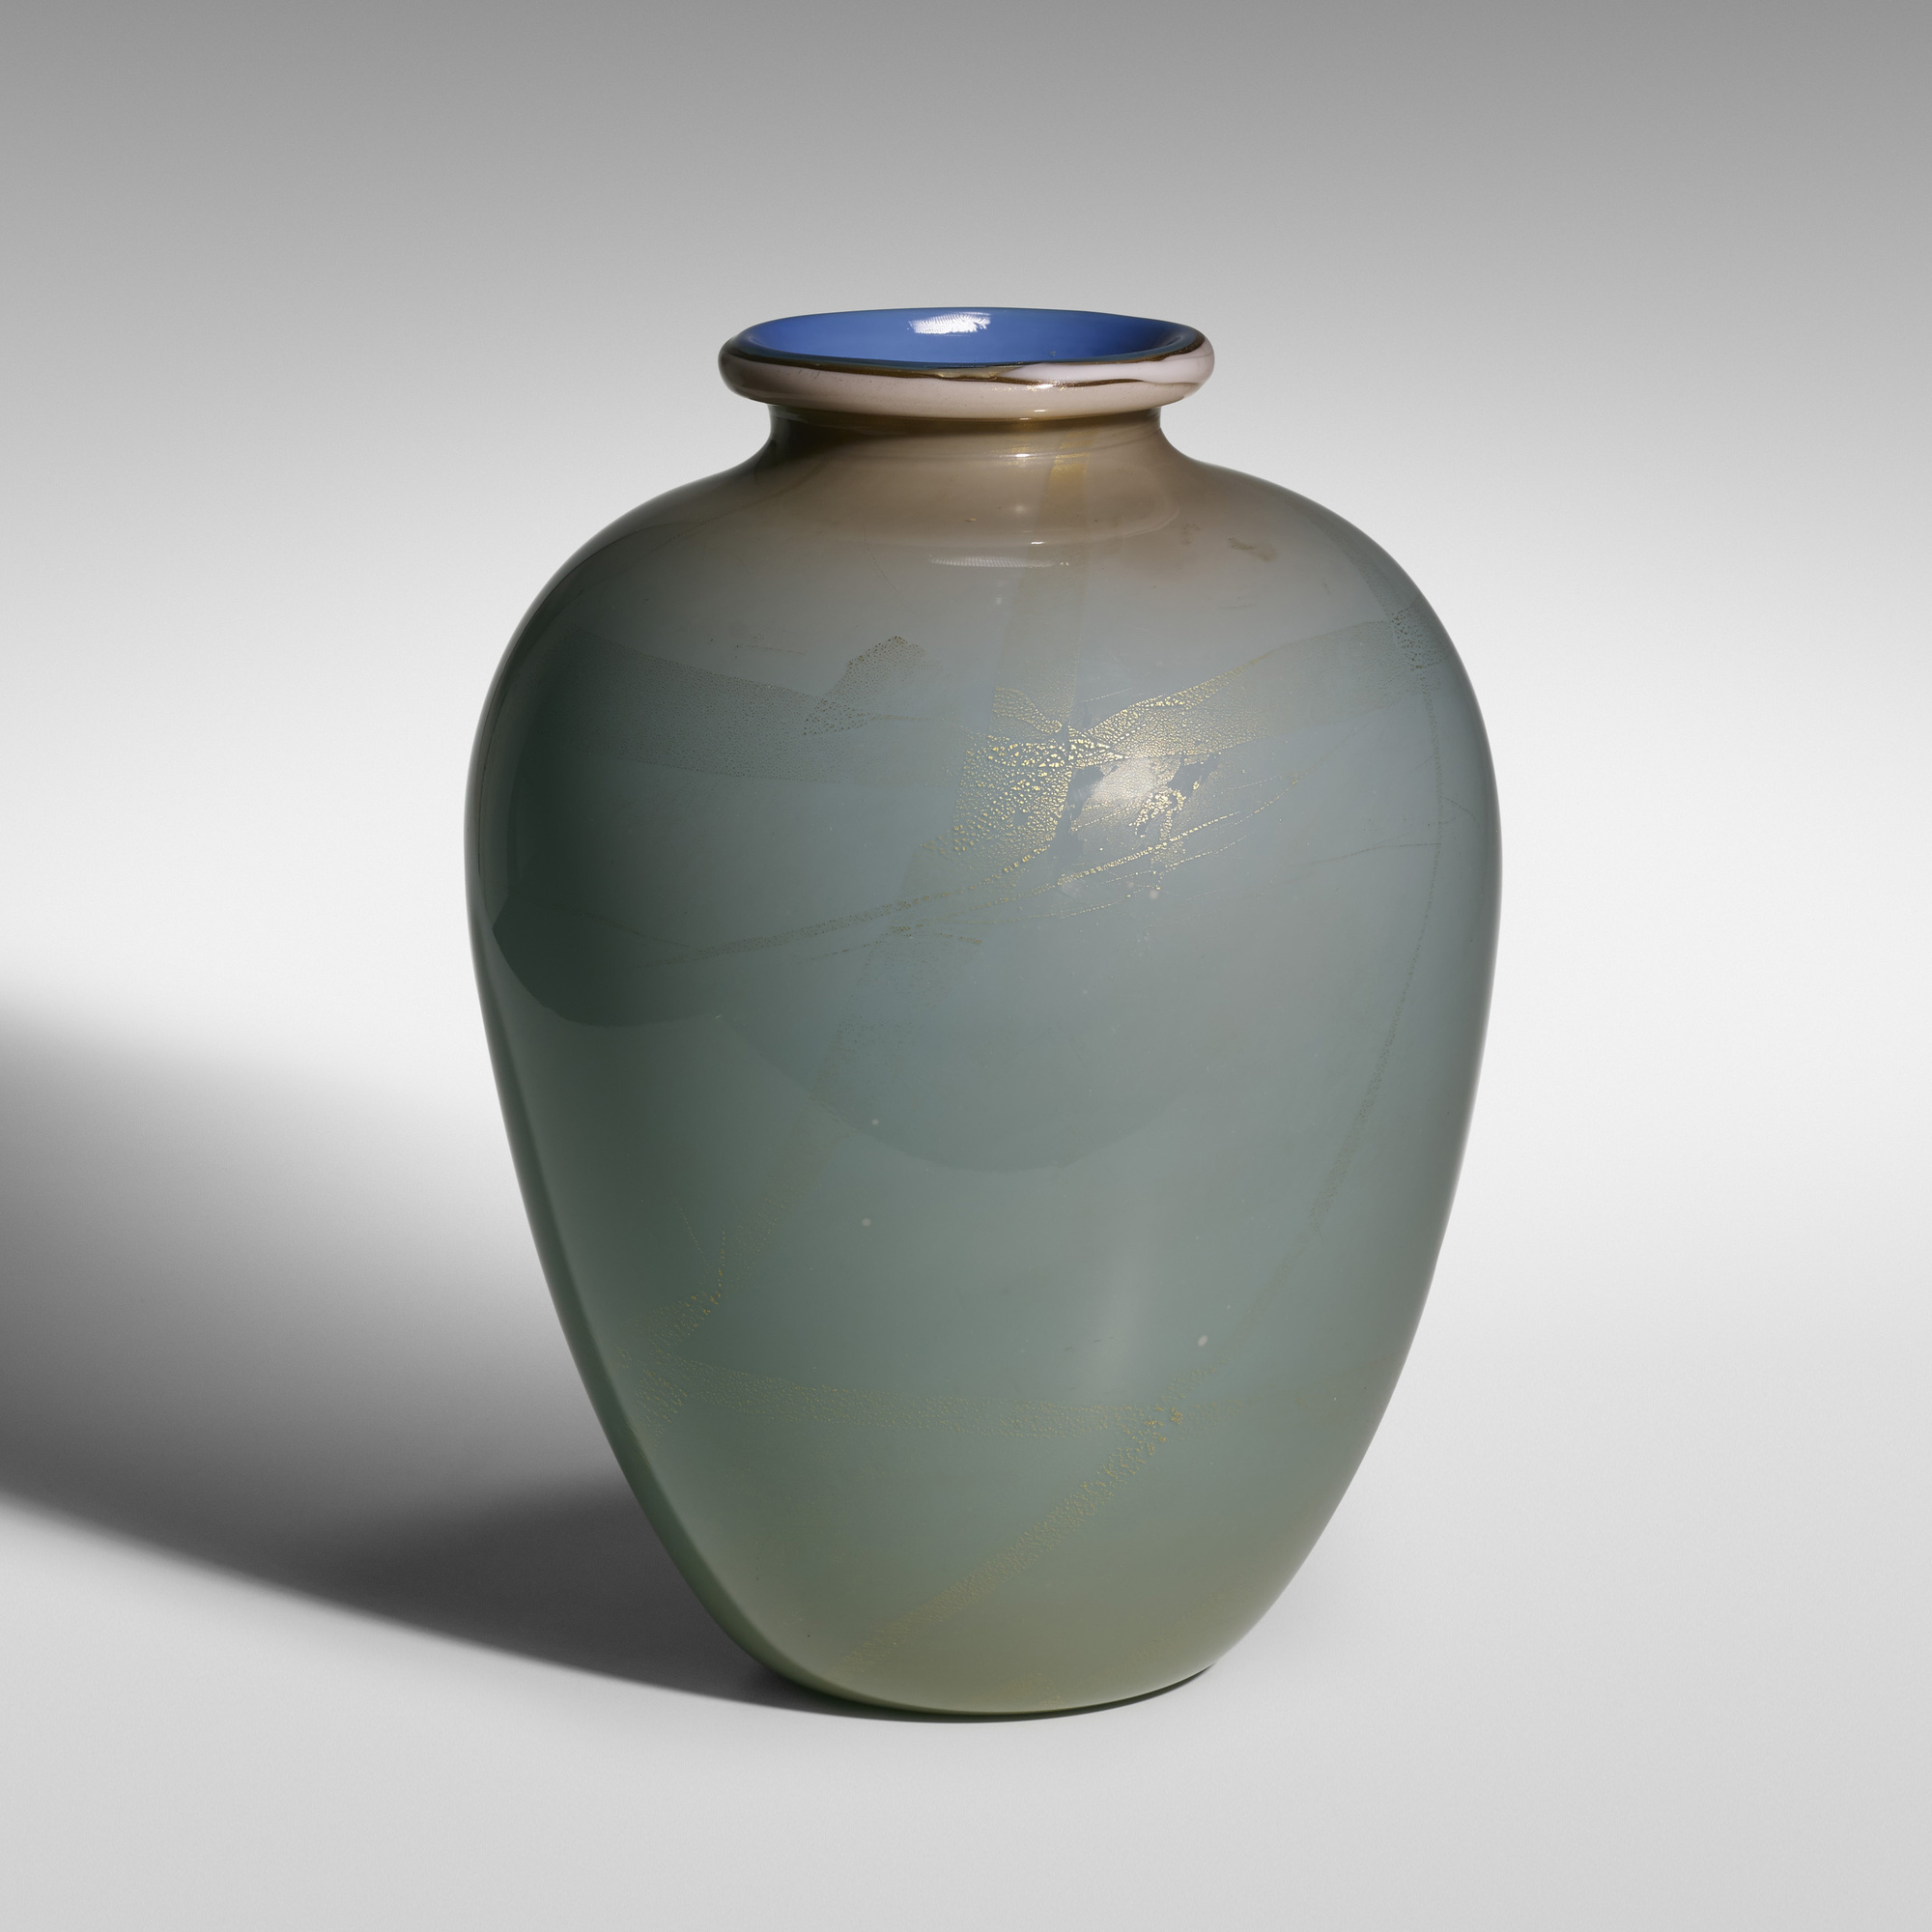 118: Tomaso Buzzi / monumental Alga vase, model 1872 (1 of 3)